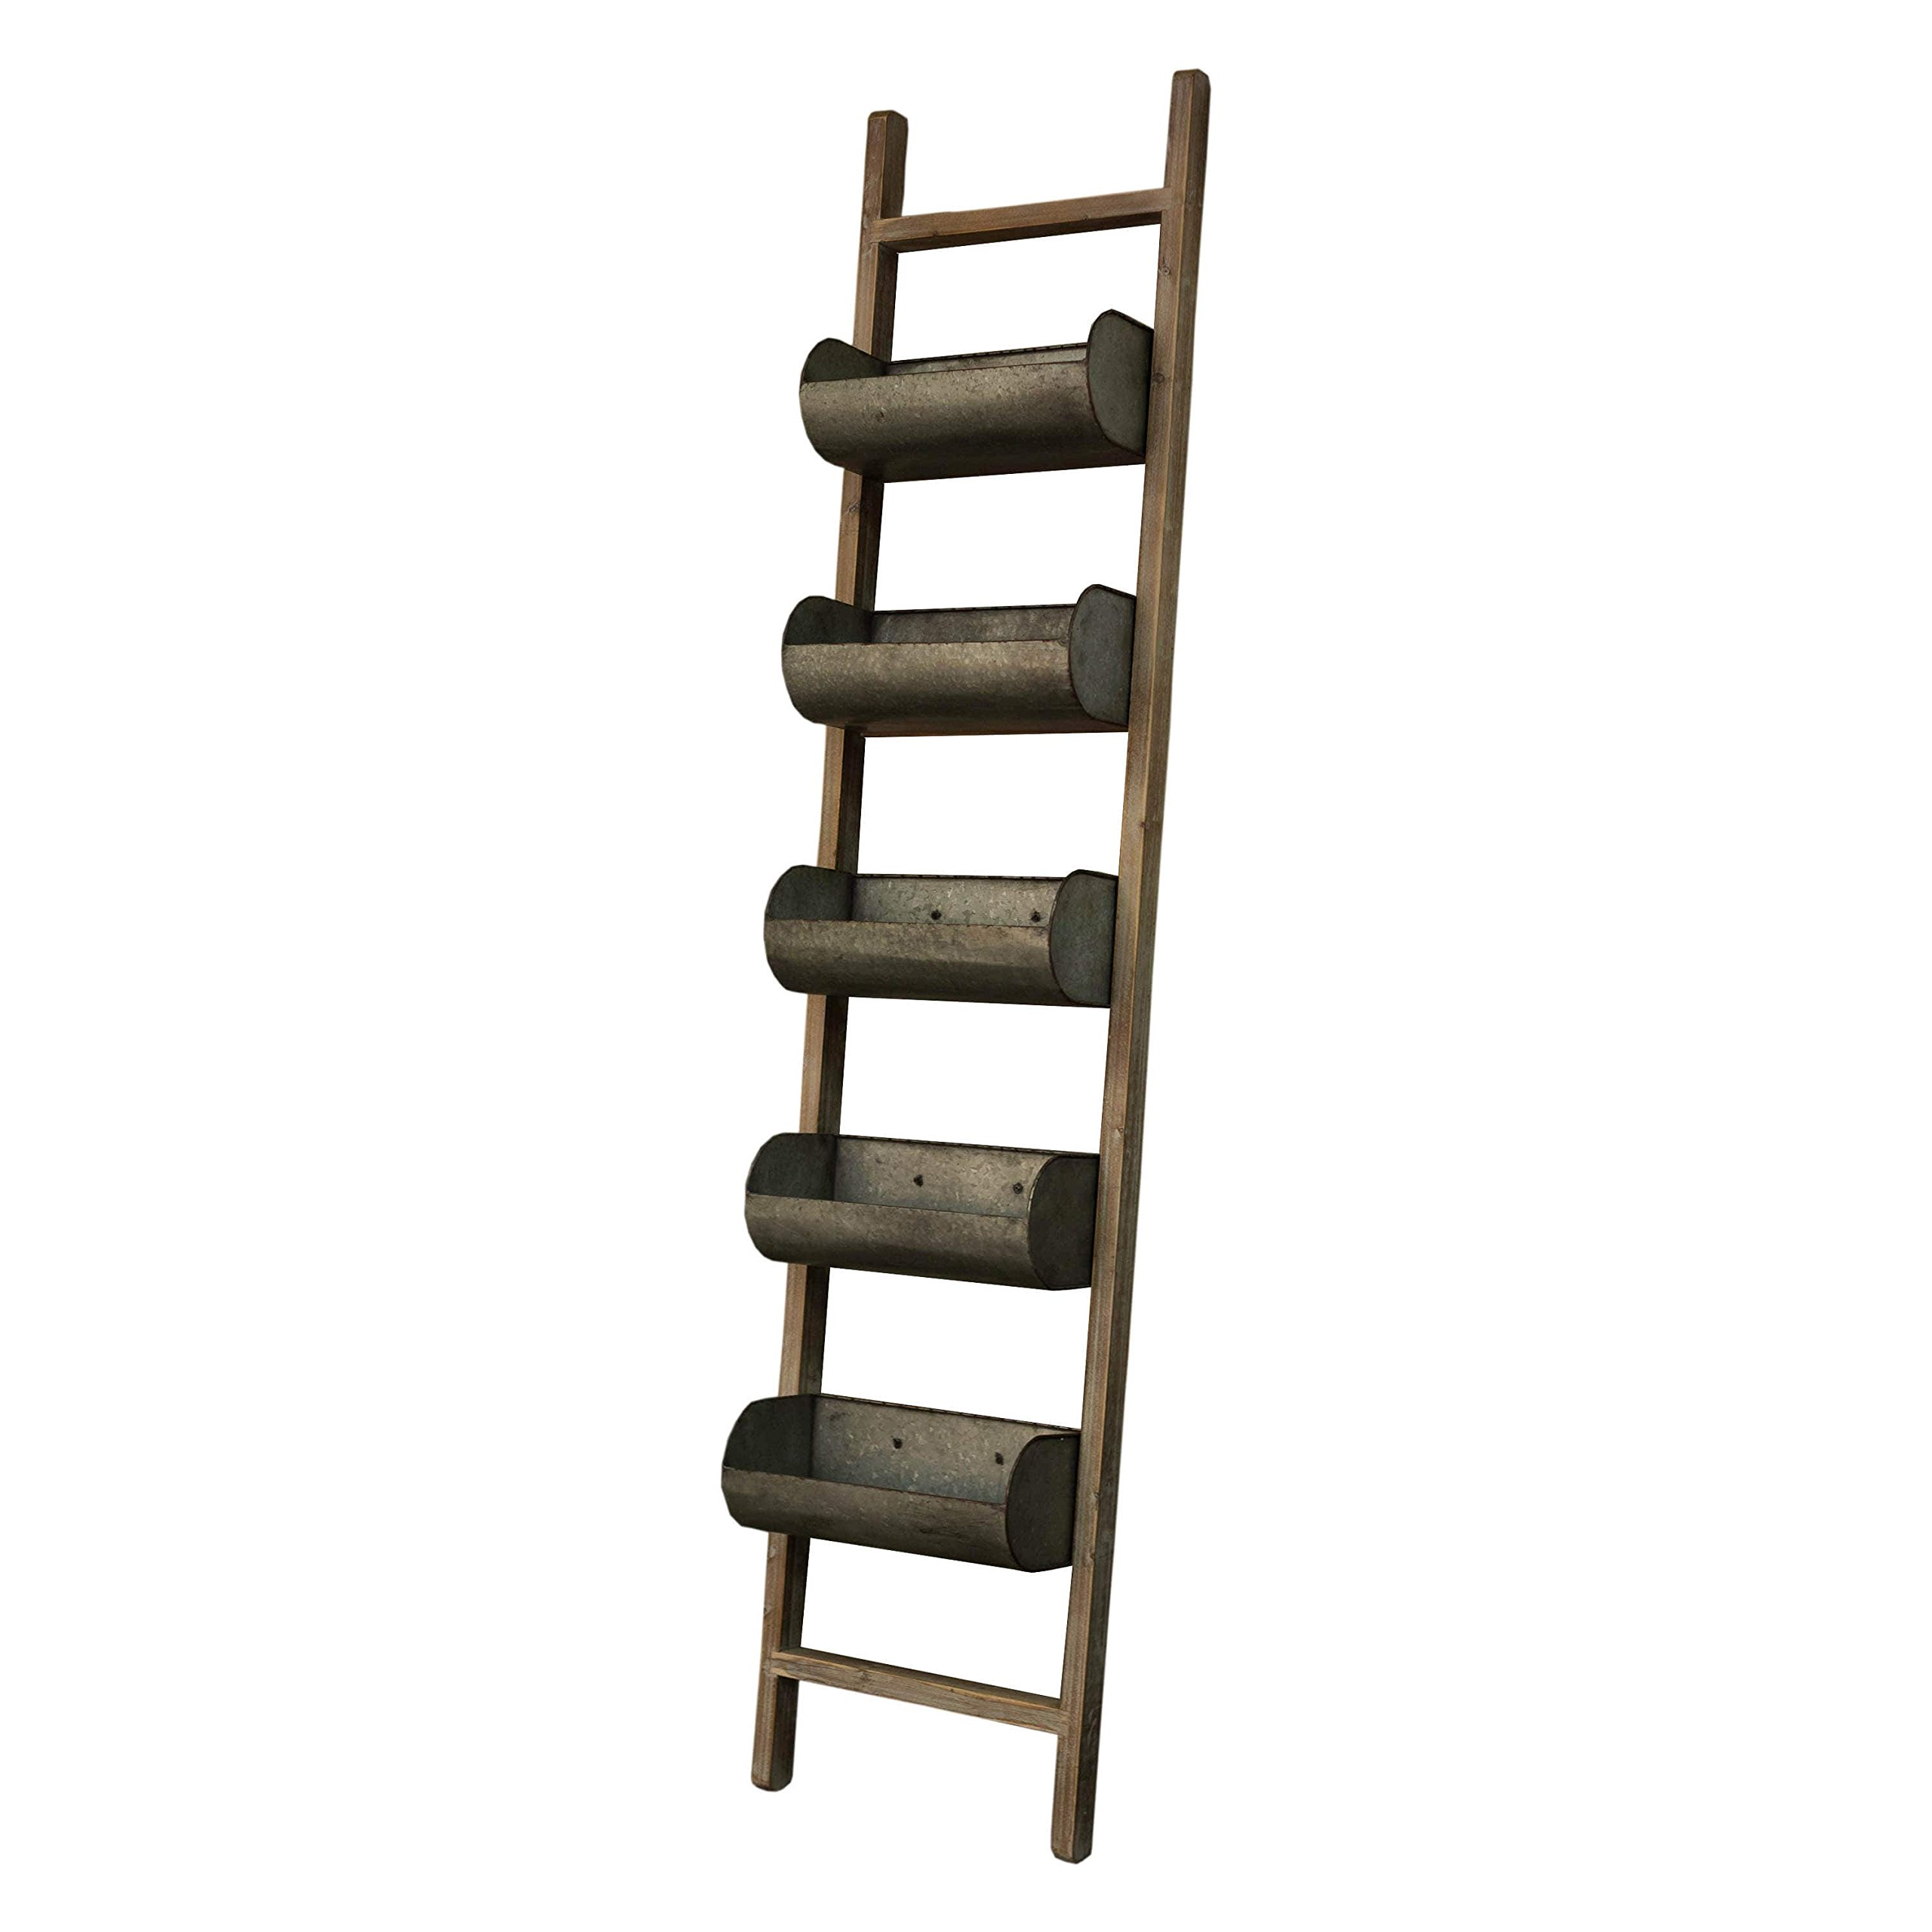 Vip International Multicolor Wood and Metal Ladder-design Wall Planter by Vip International